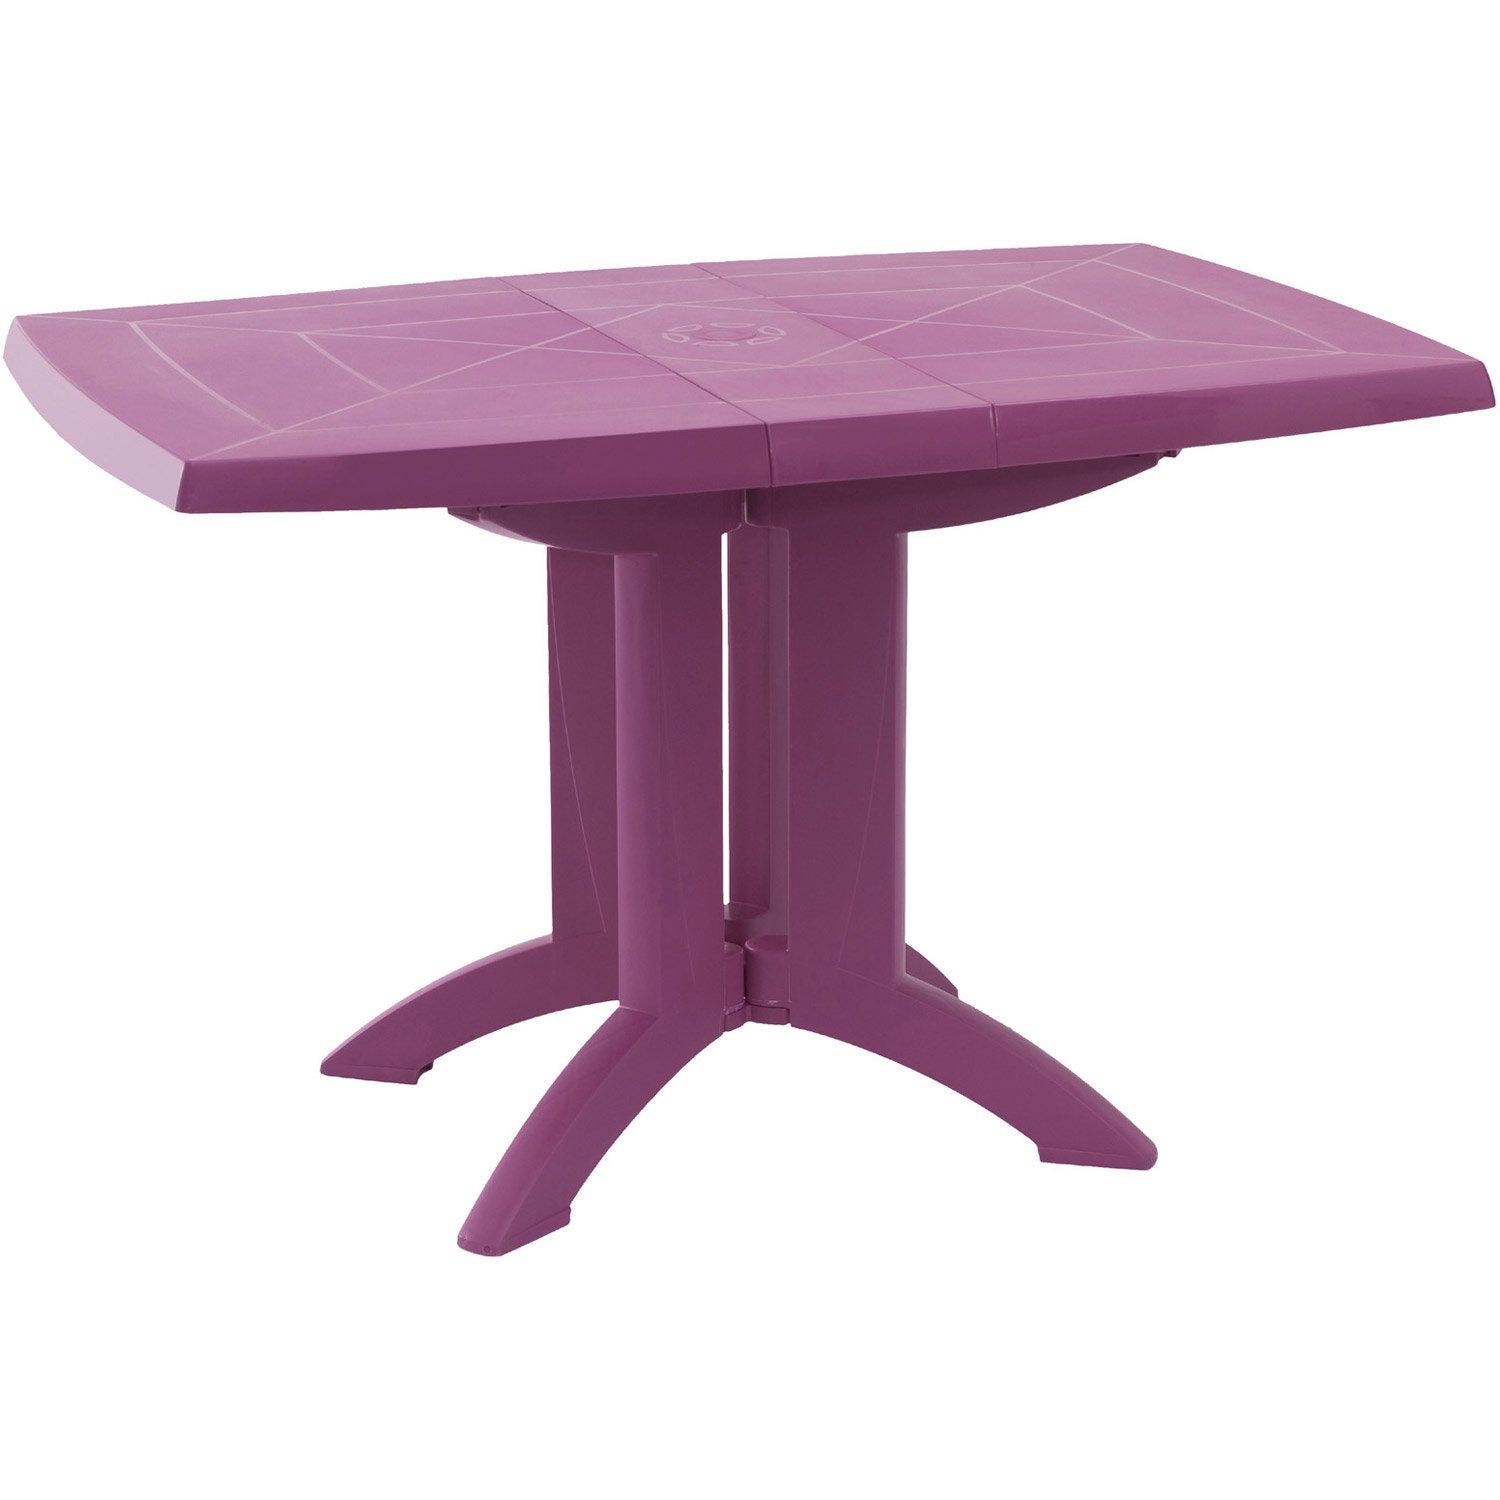 Table de salon de jardin pliante for Mobilier de jardin leroy merlin